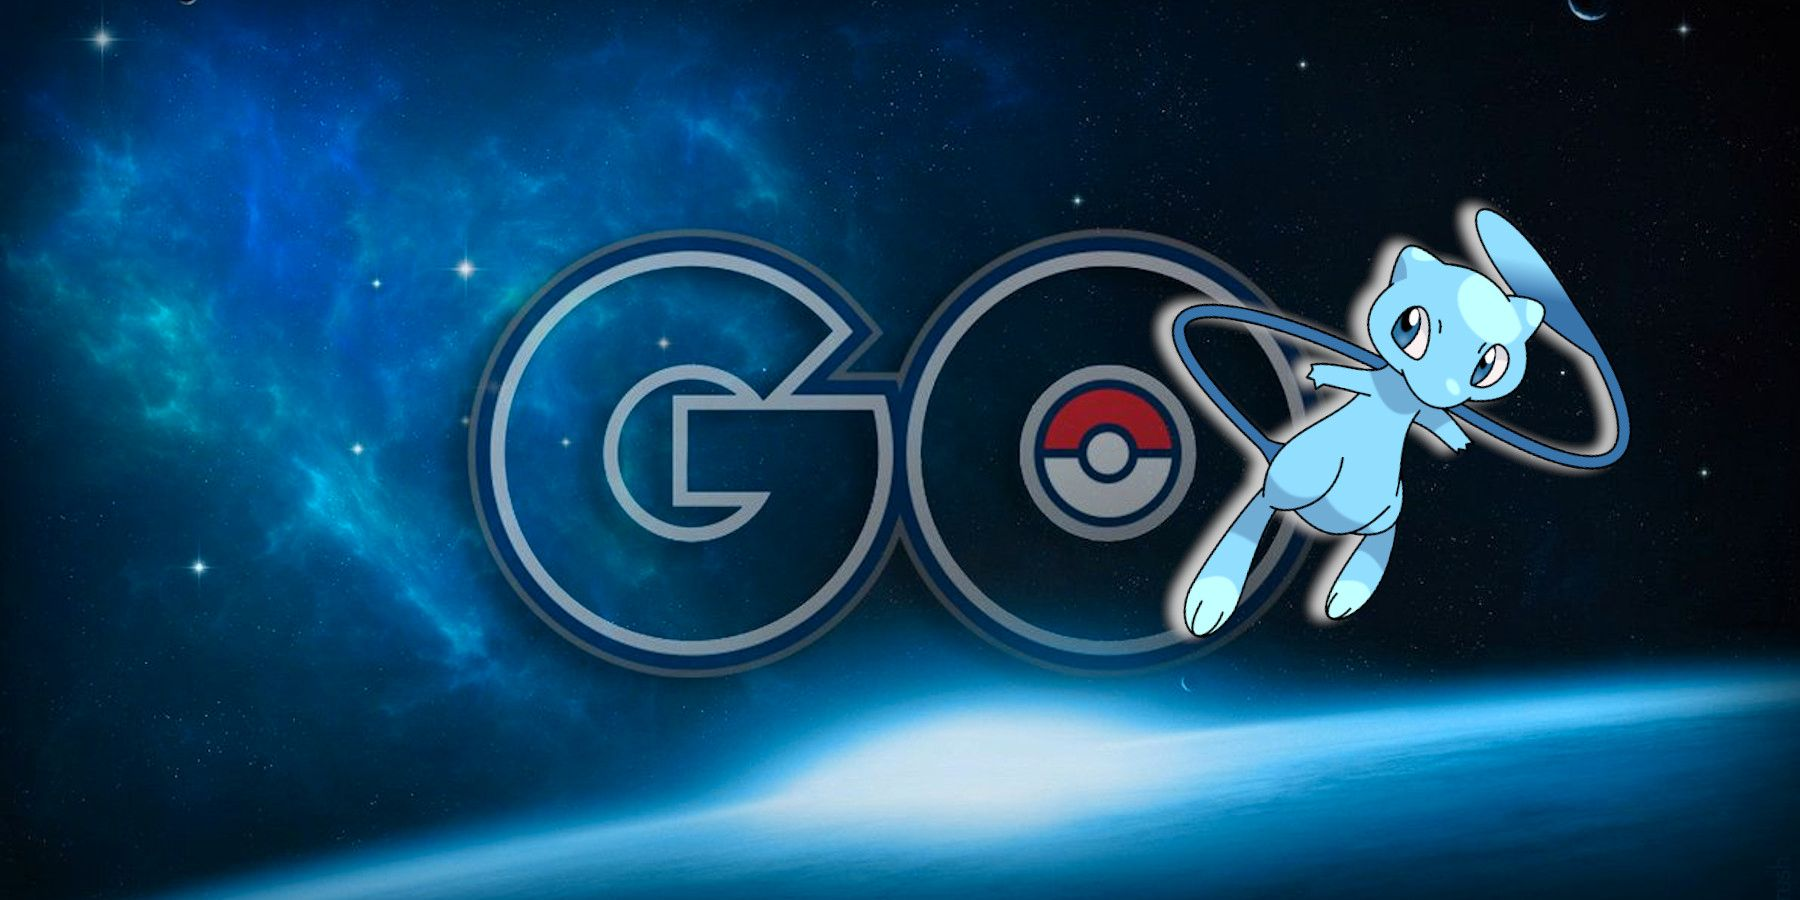 Pokemon GO: How To Complete The Shiny Mew Quests